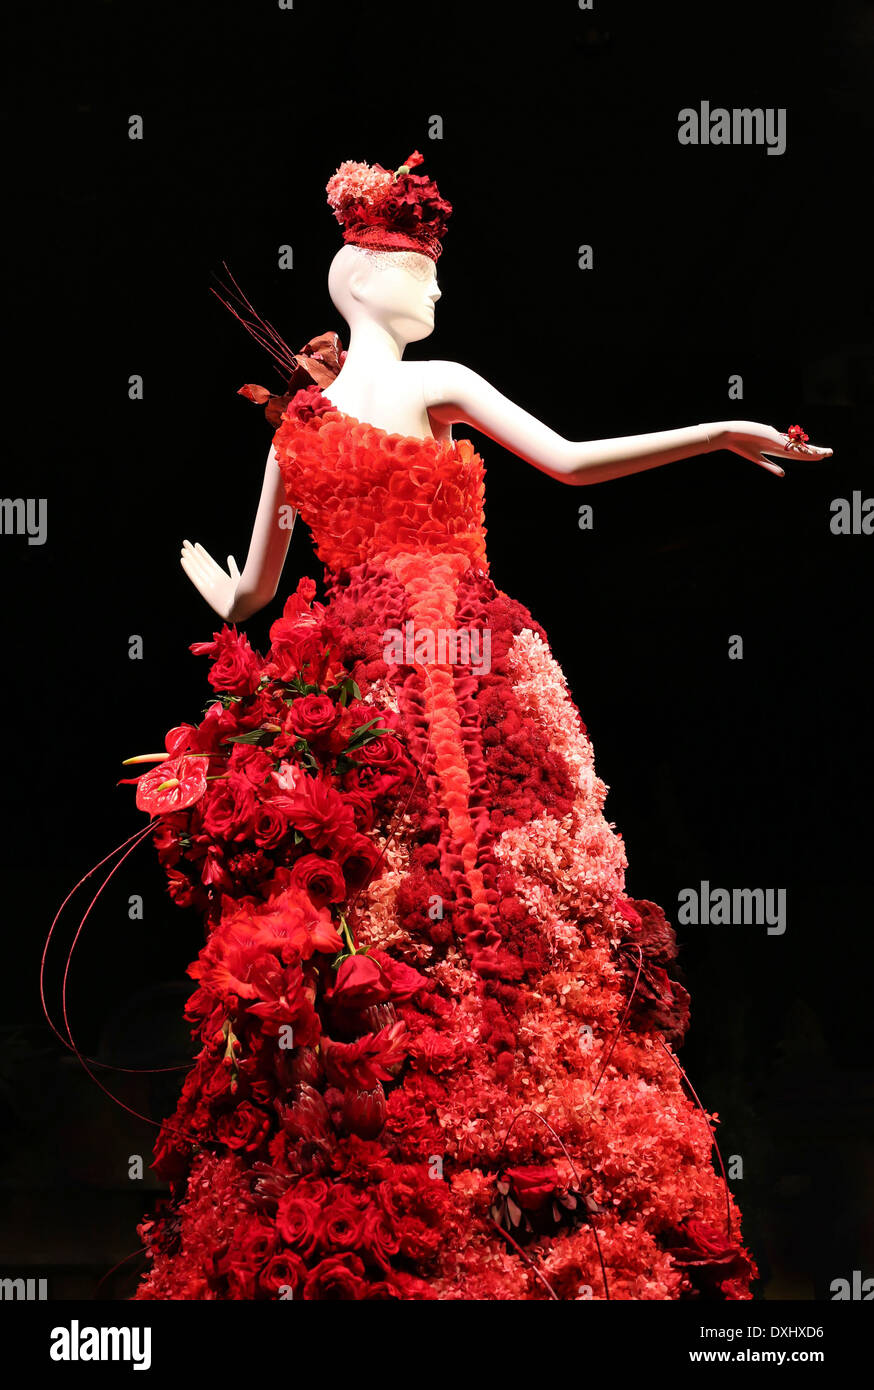 a-mannequin-in-a-dress-made-of-red-flowe